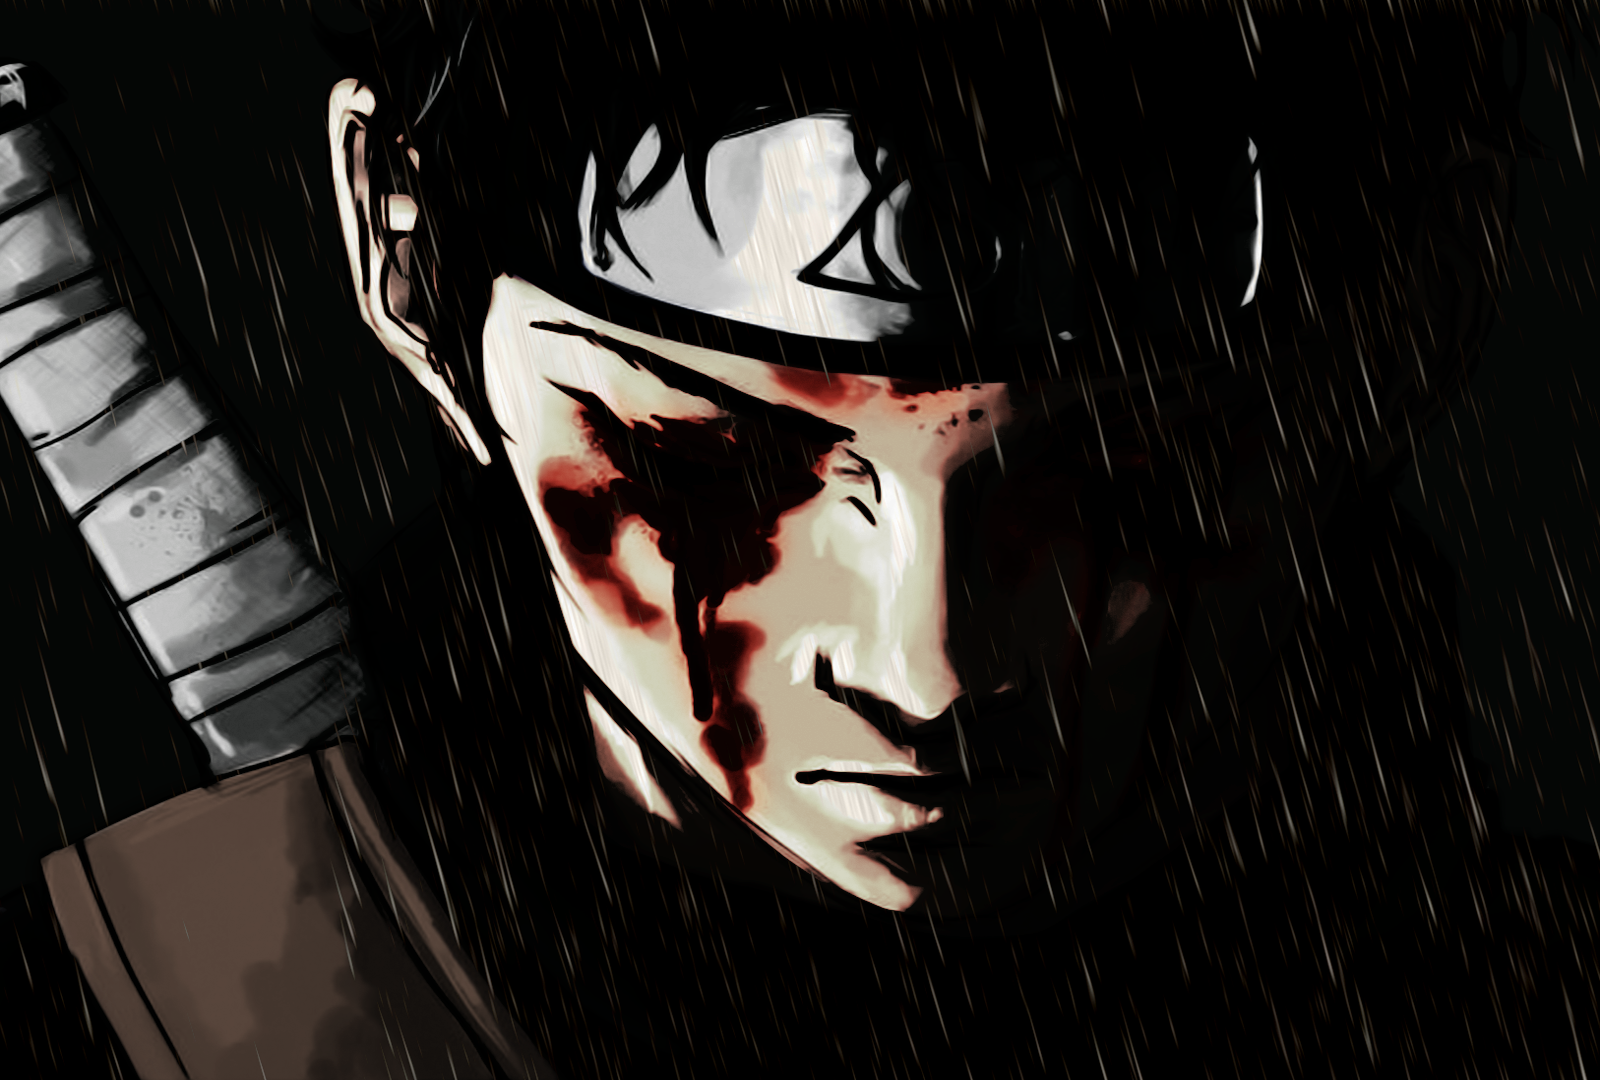 Naruto Shippuden | Shisui Uchiha - Rain by TheAMVDBZ on ...